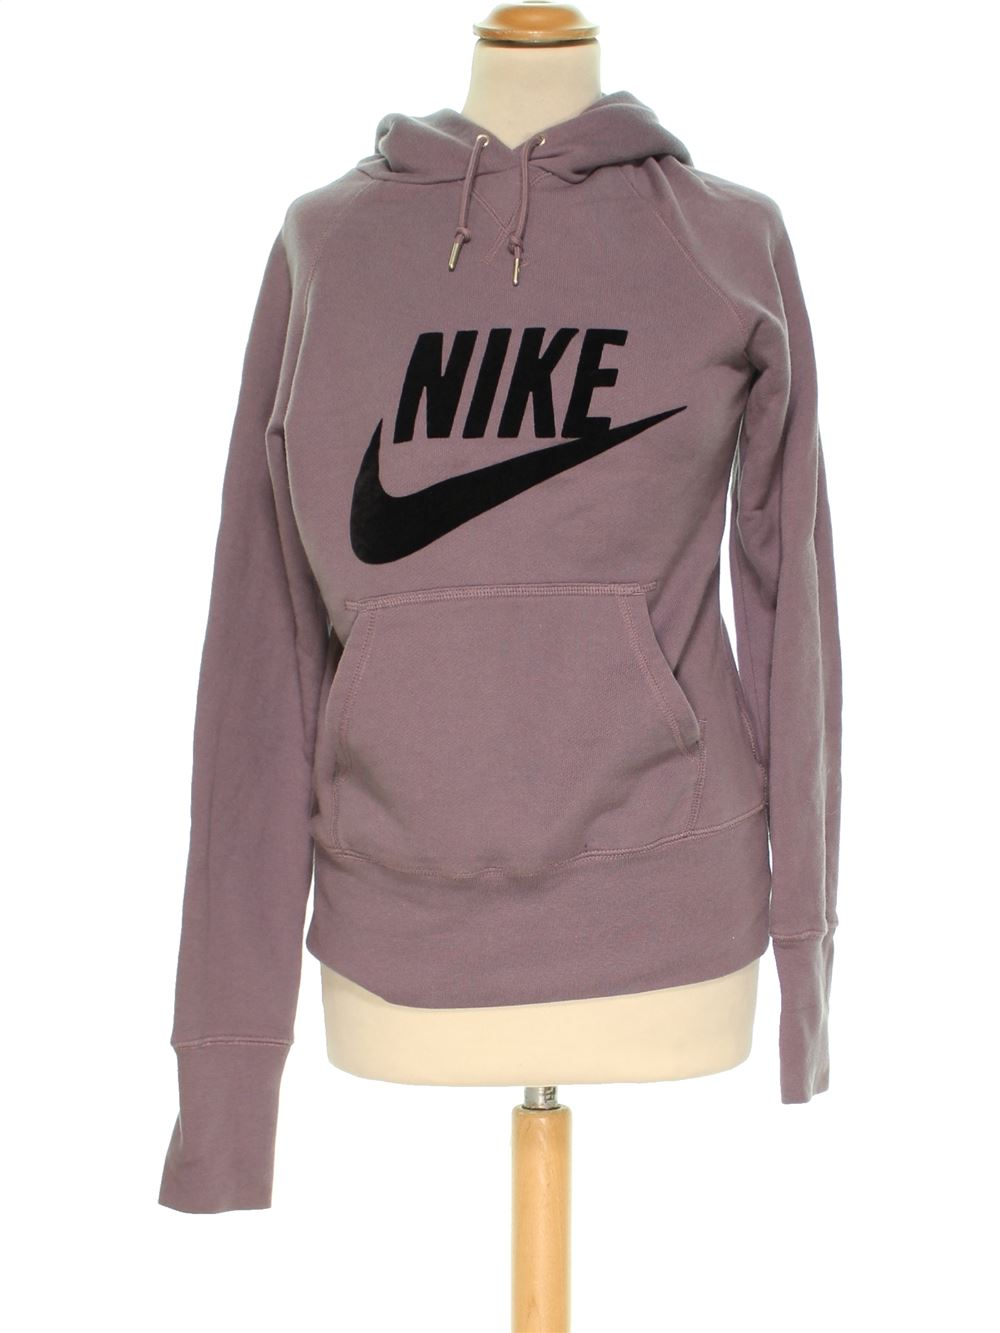 huge selection of new lower prices best choice pull femme nike pas cher